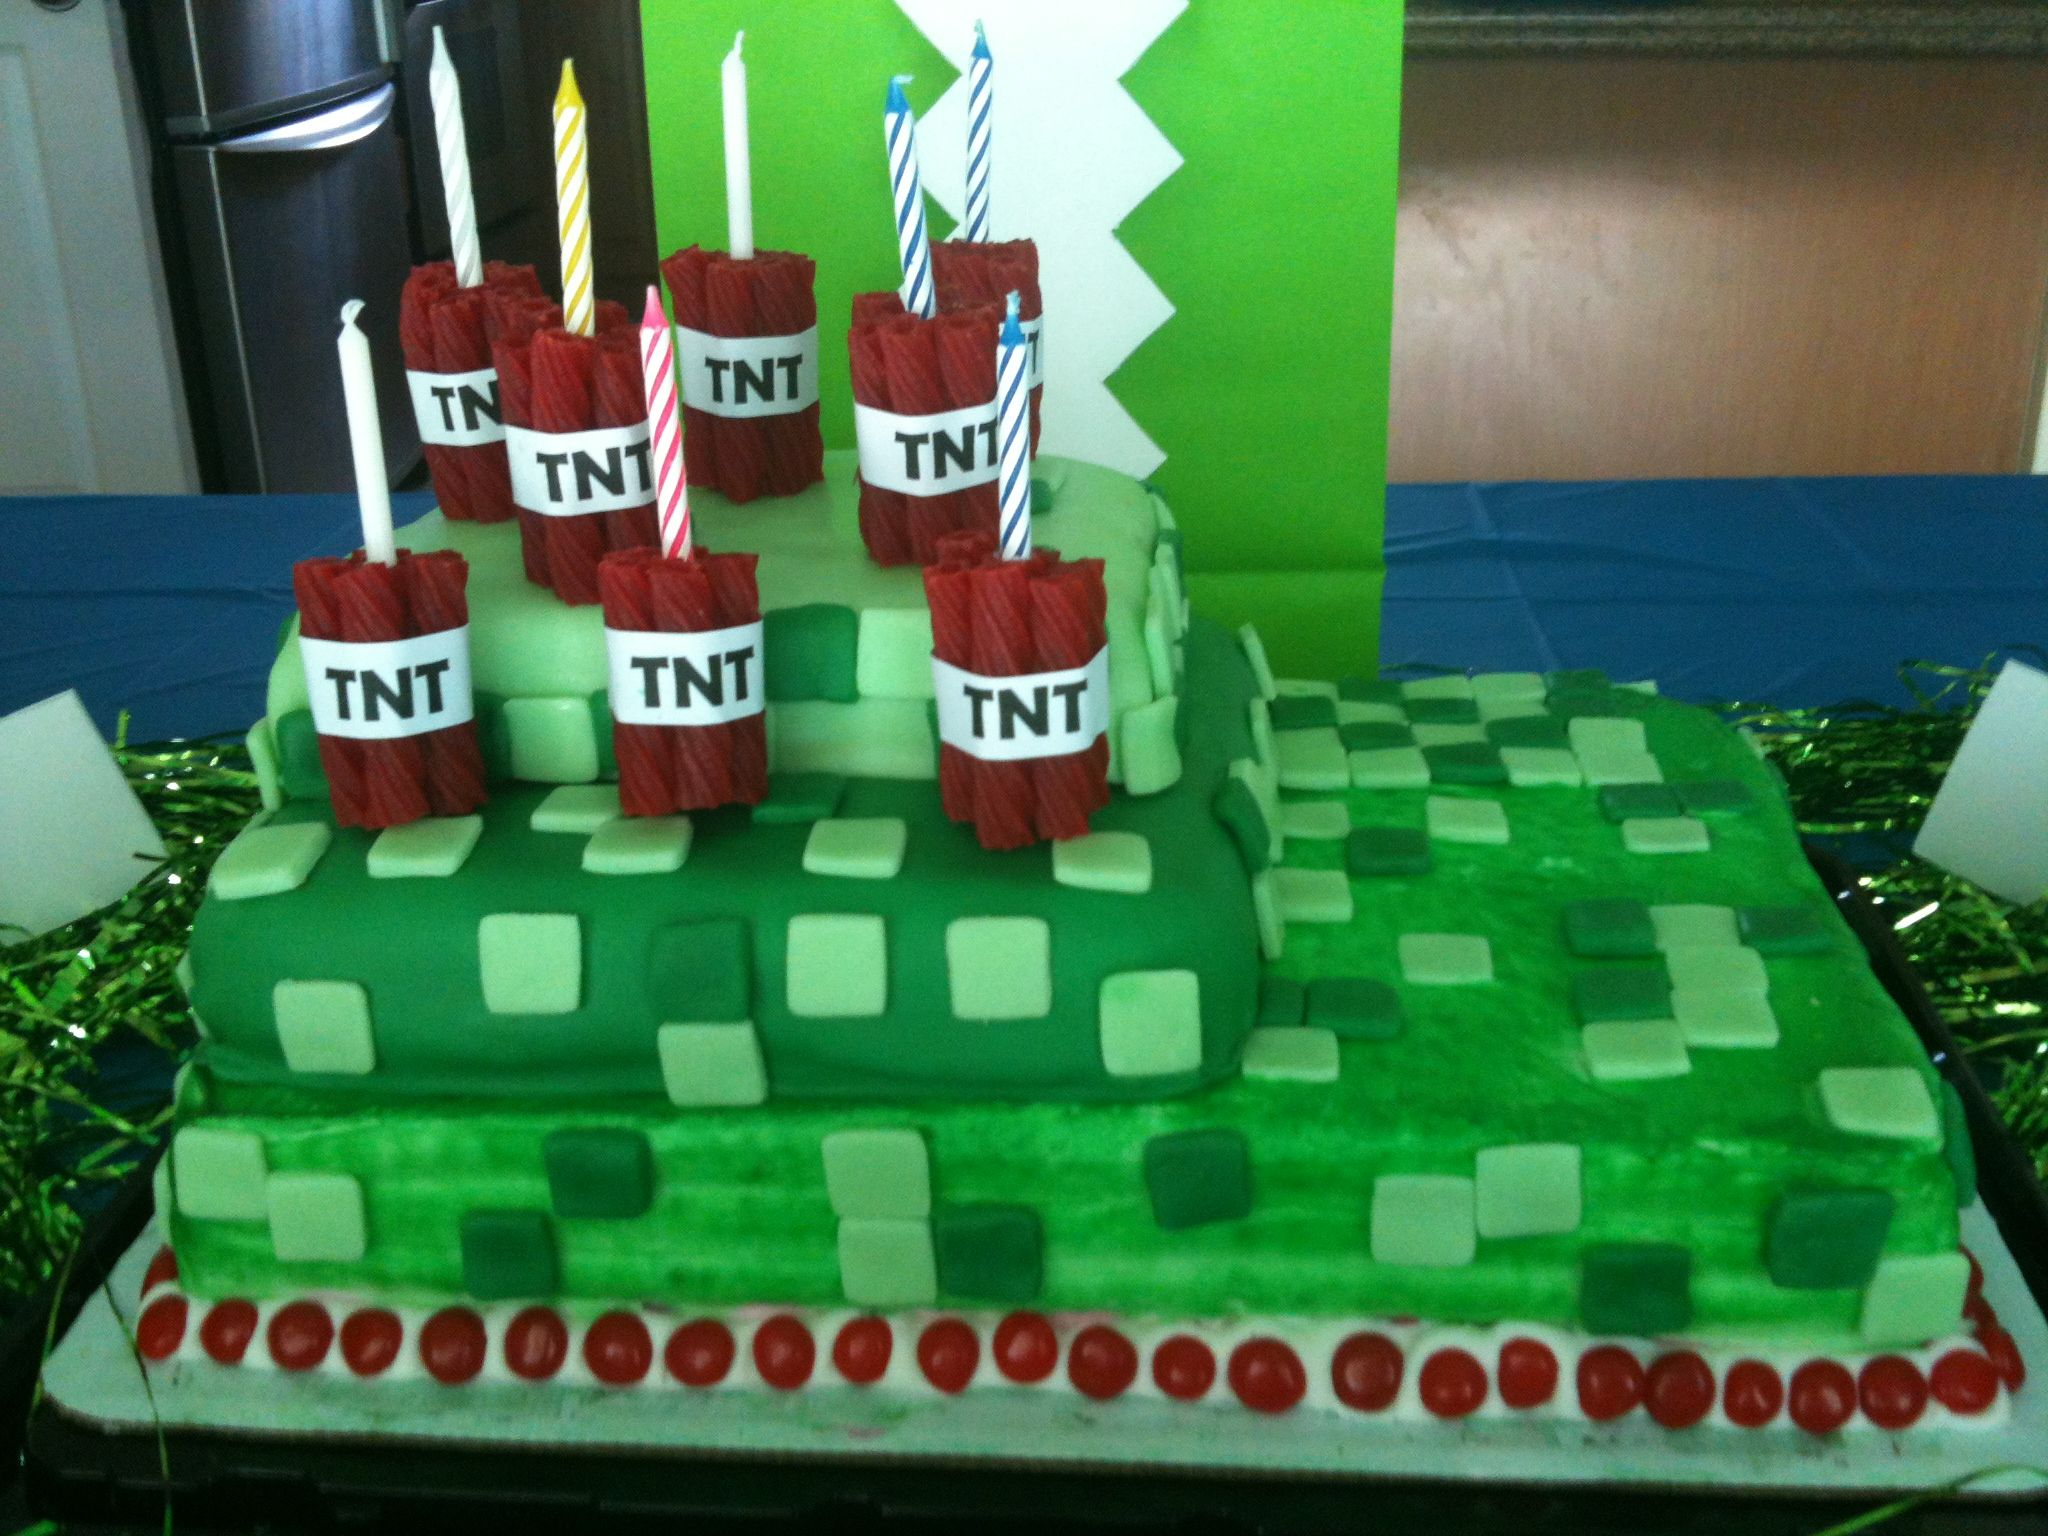 Tnt Minecraft Cake Ideas 12539 Minecraft Cake With Tnt Can